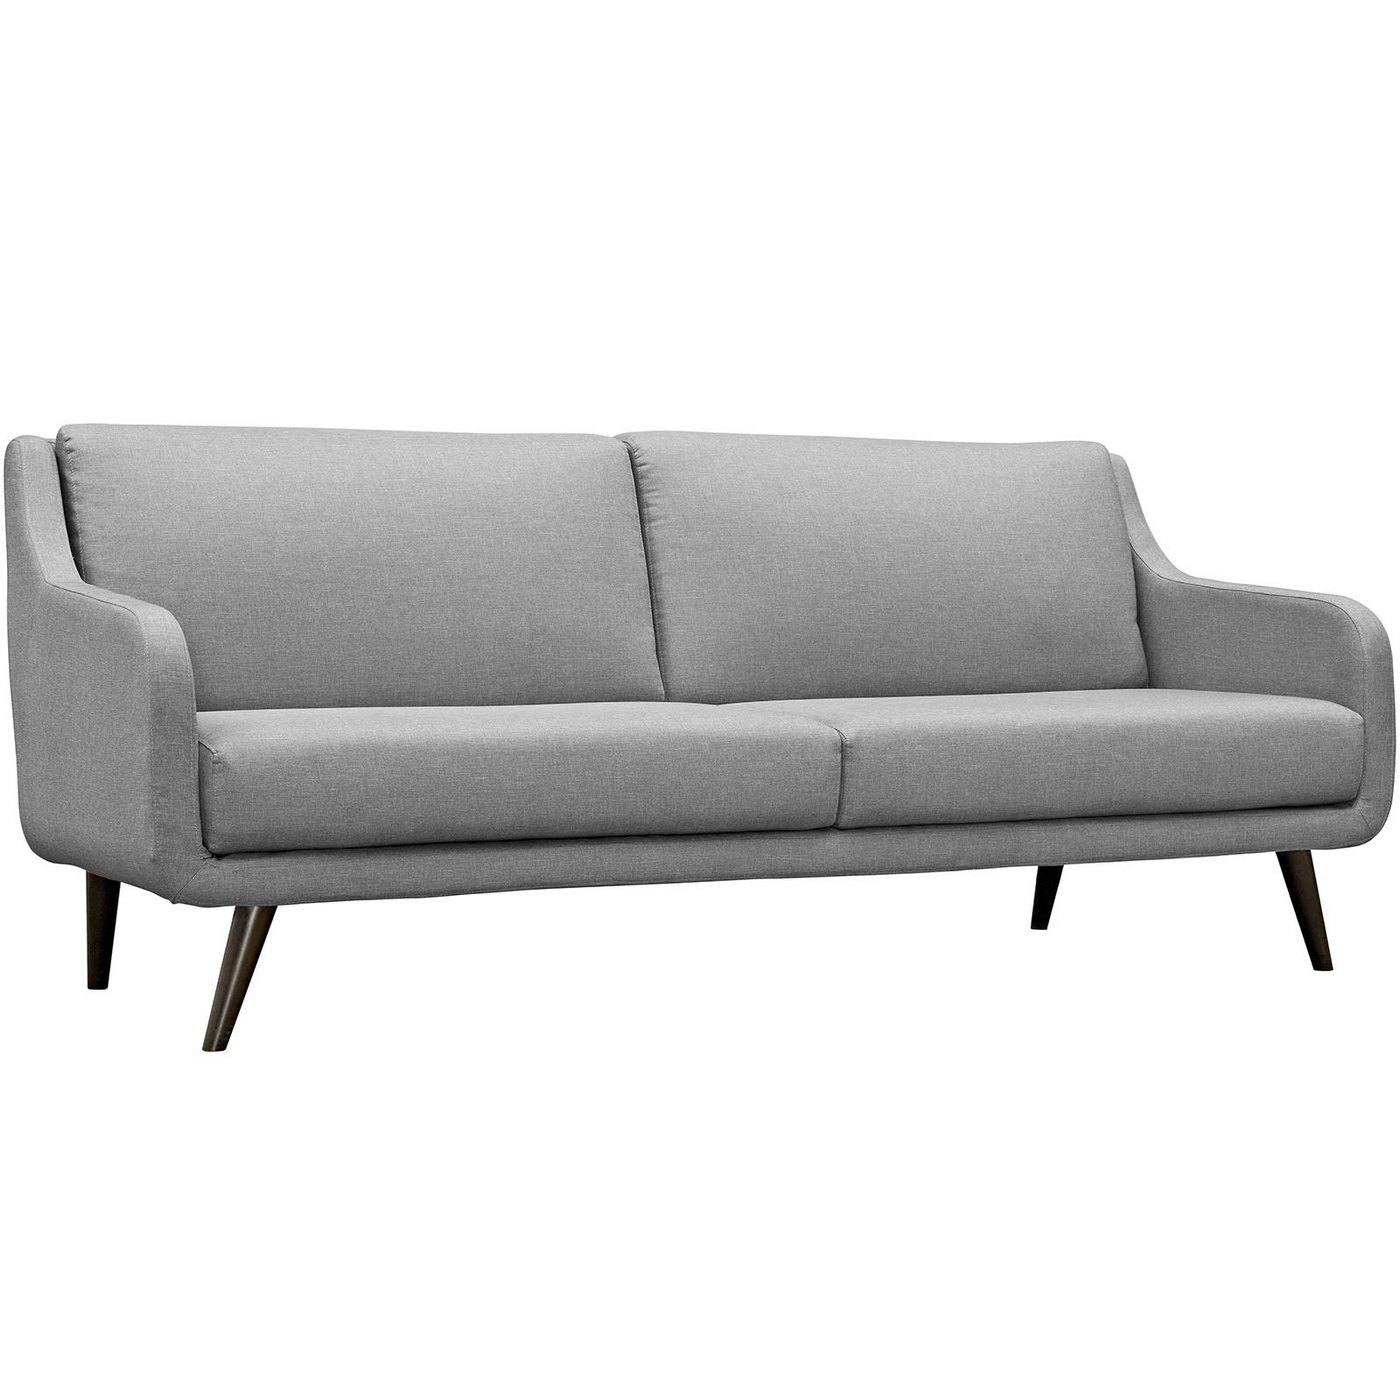 verve mid century modern upholstered sofa with wood frame light gray. Black Bedroom Furniture Sets. Home Design Ideas